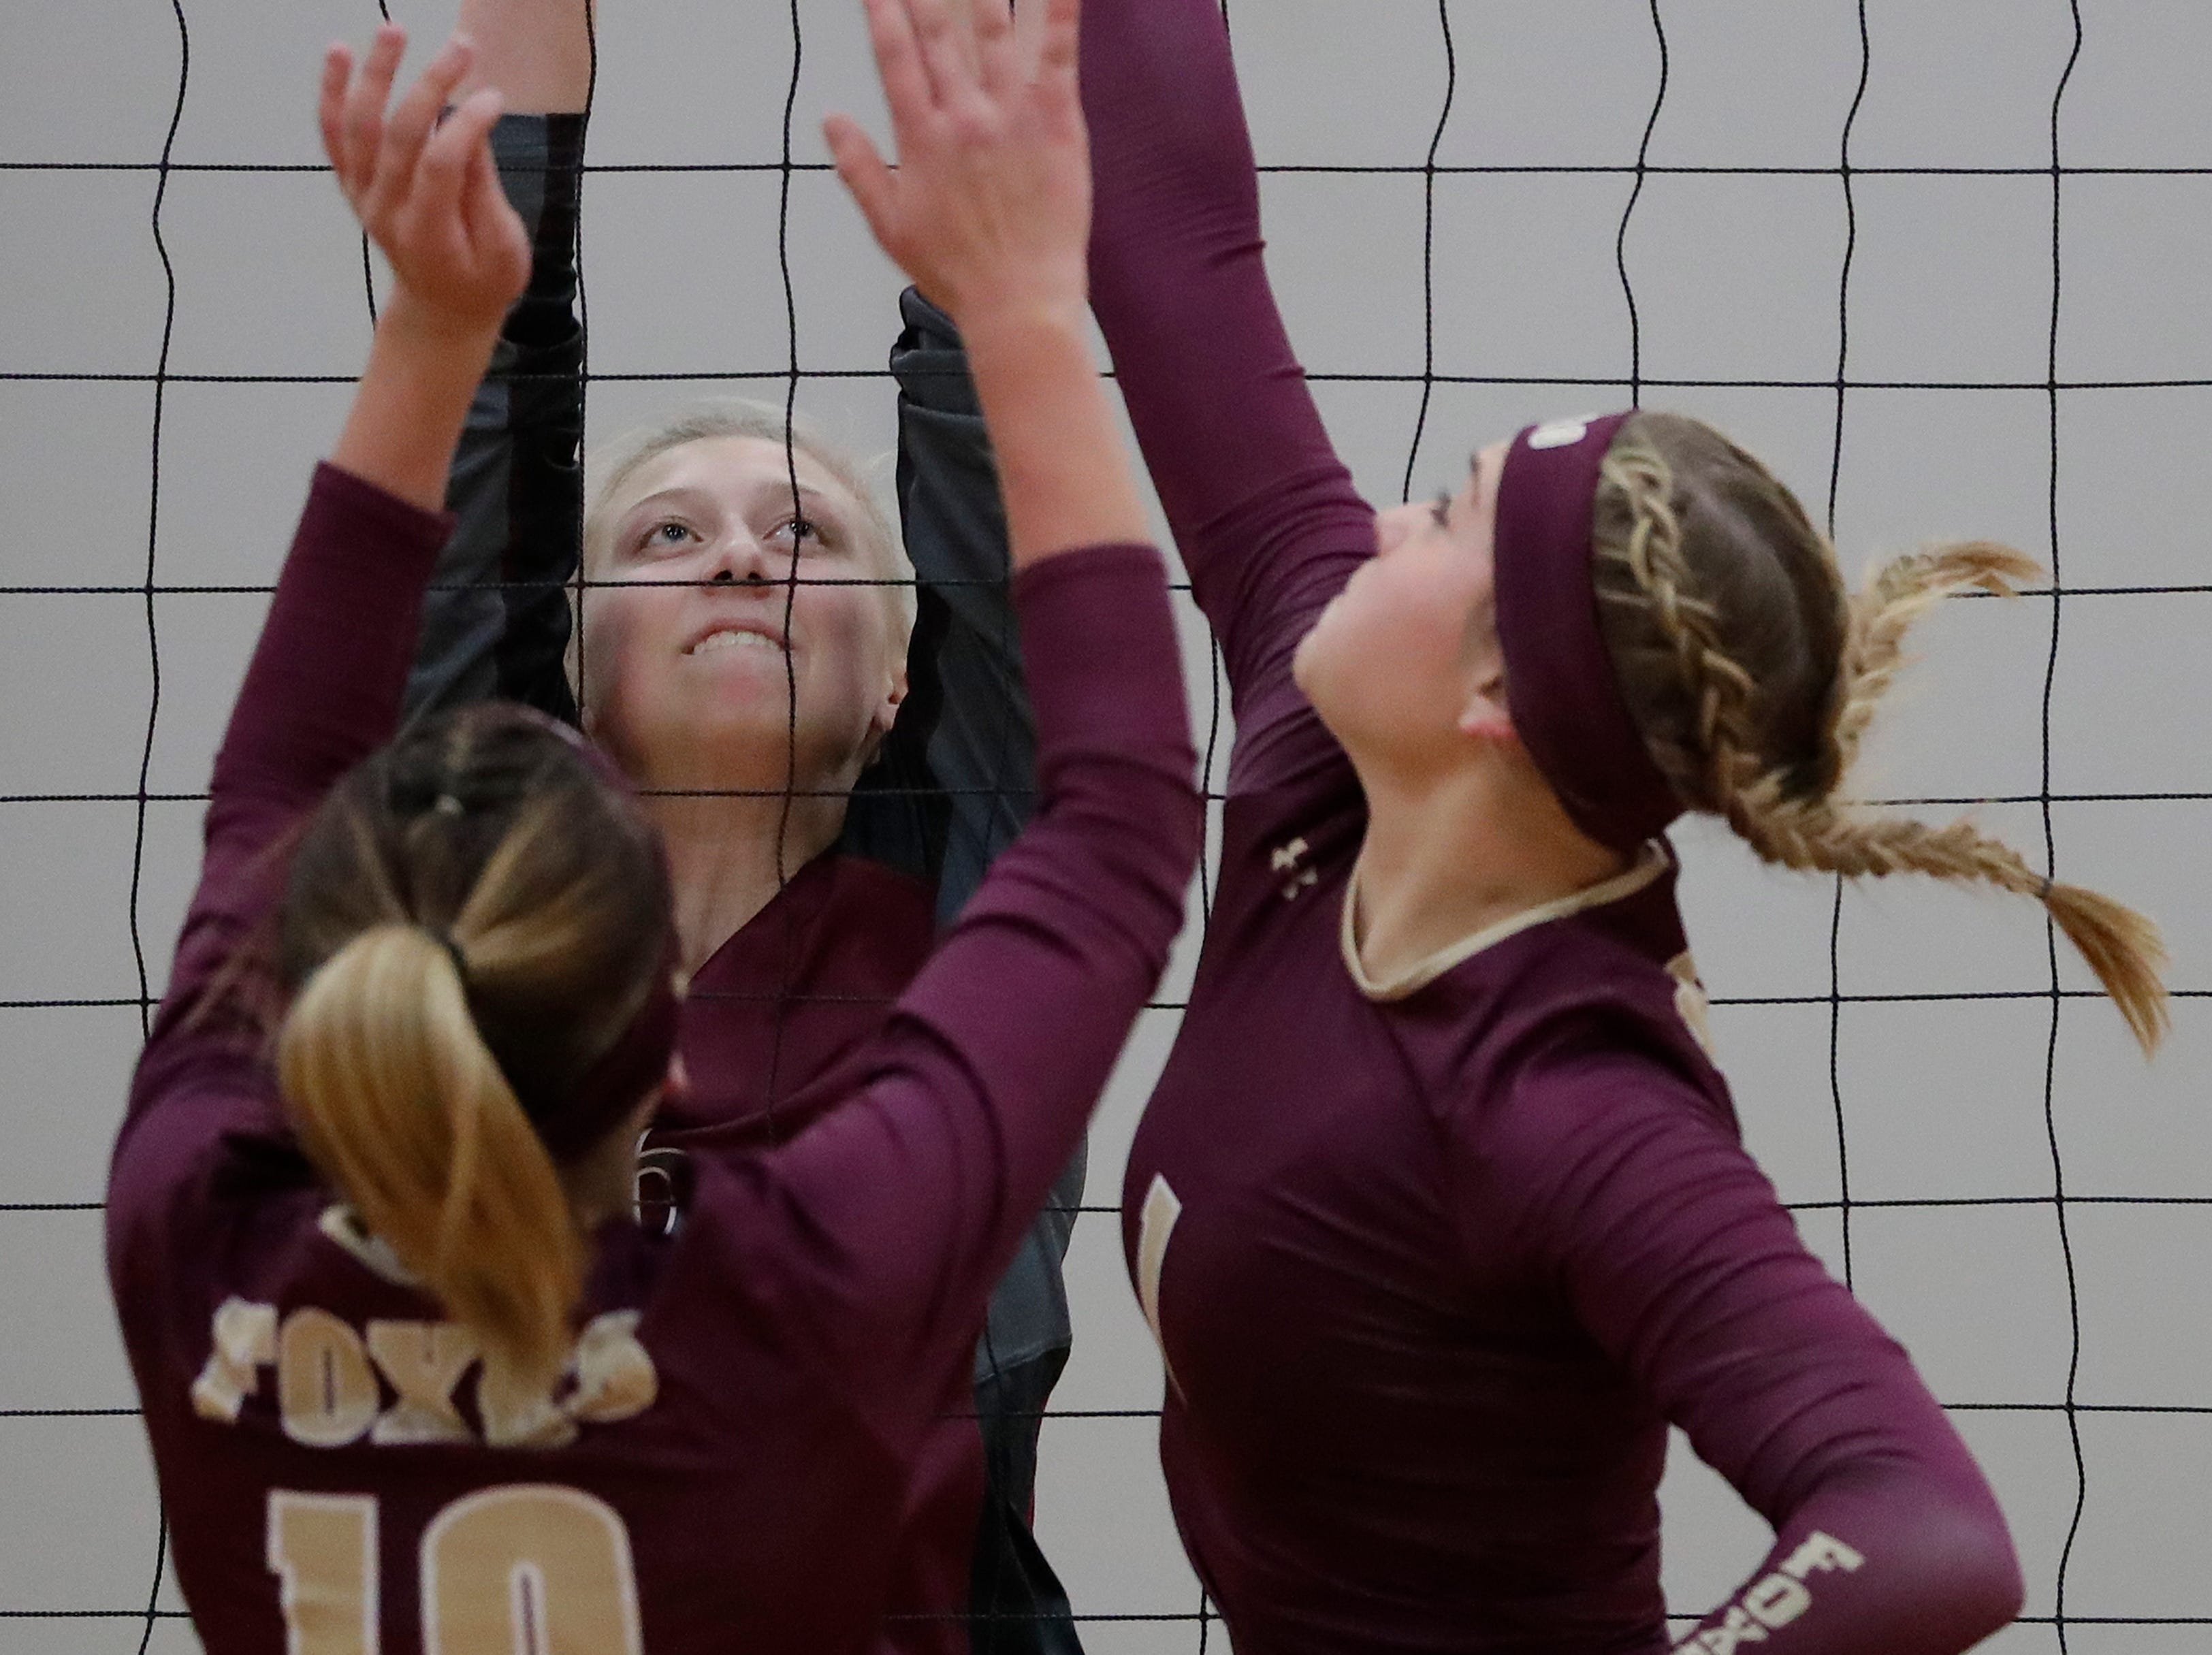 Fox Valley Lutheran High School's Cassandra Patchett (6) defends against Omro High School's Madelyn Larsen (10) and Jadyn Yonke (10) during their girls volleyball match Tuesday, Oct. 16, 2018, in Appleton, Wis. 